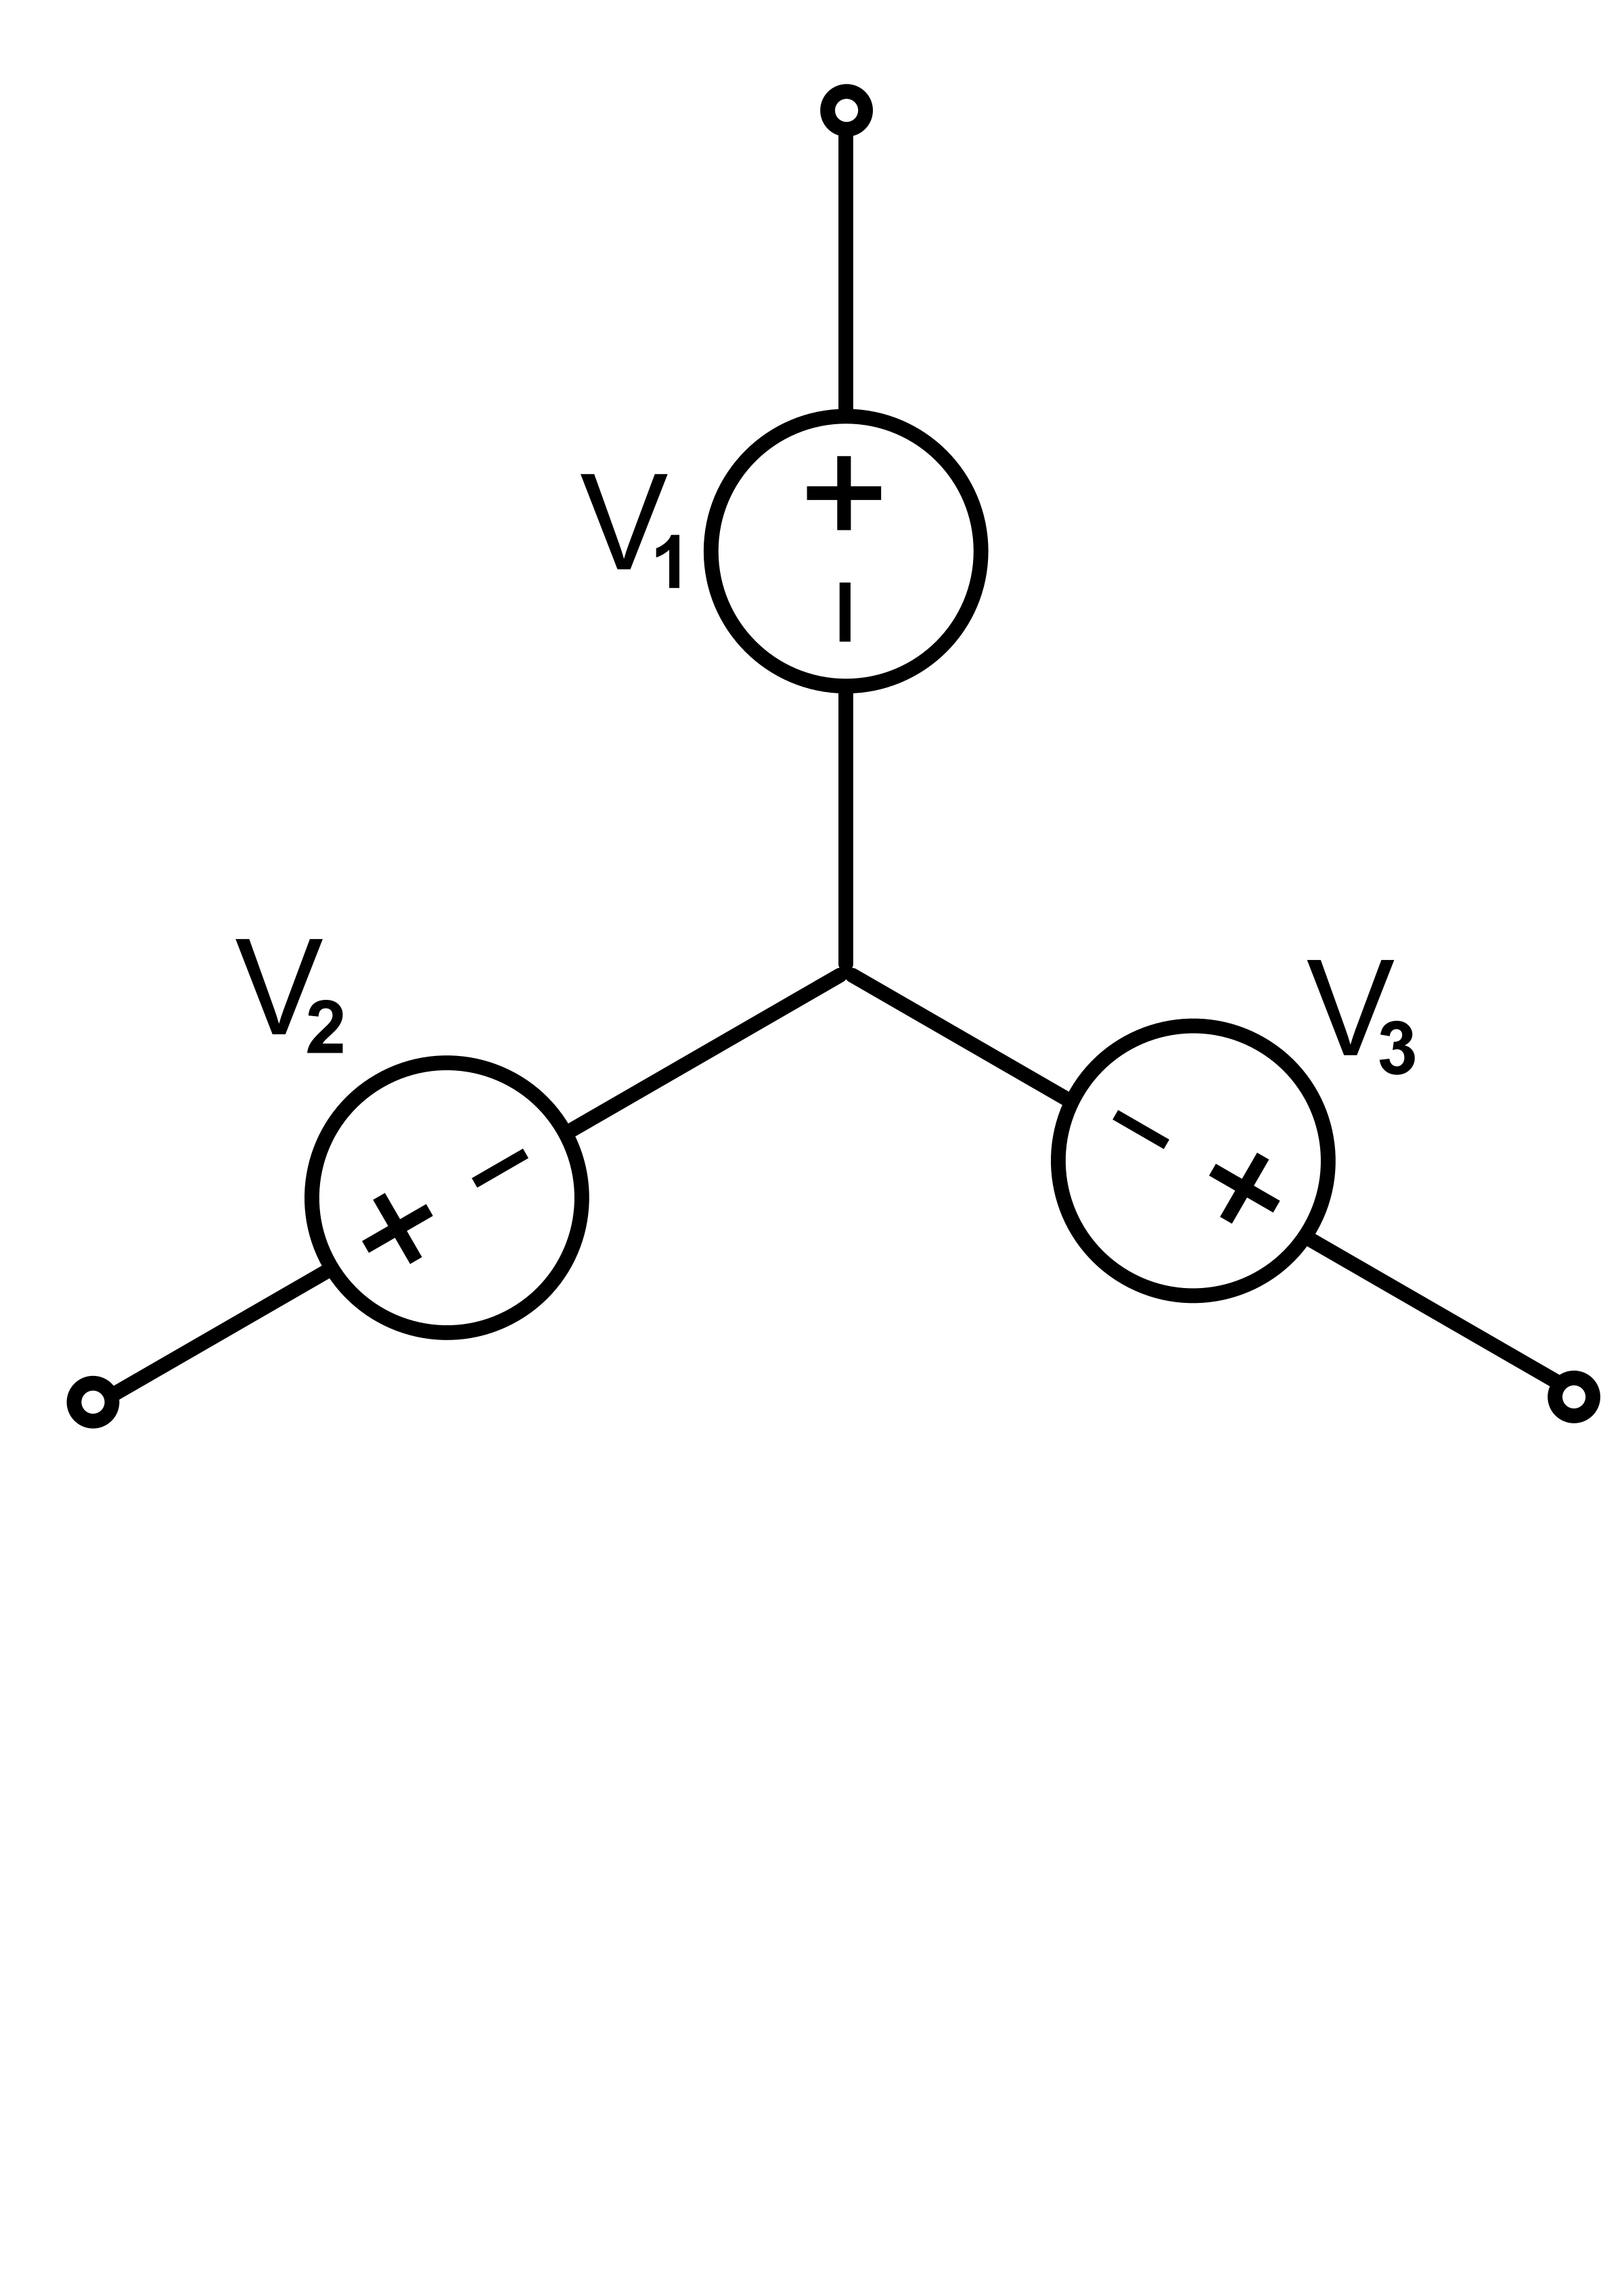 Electric clipart power source. A three phase connected